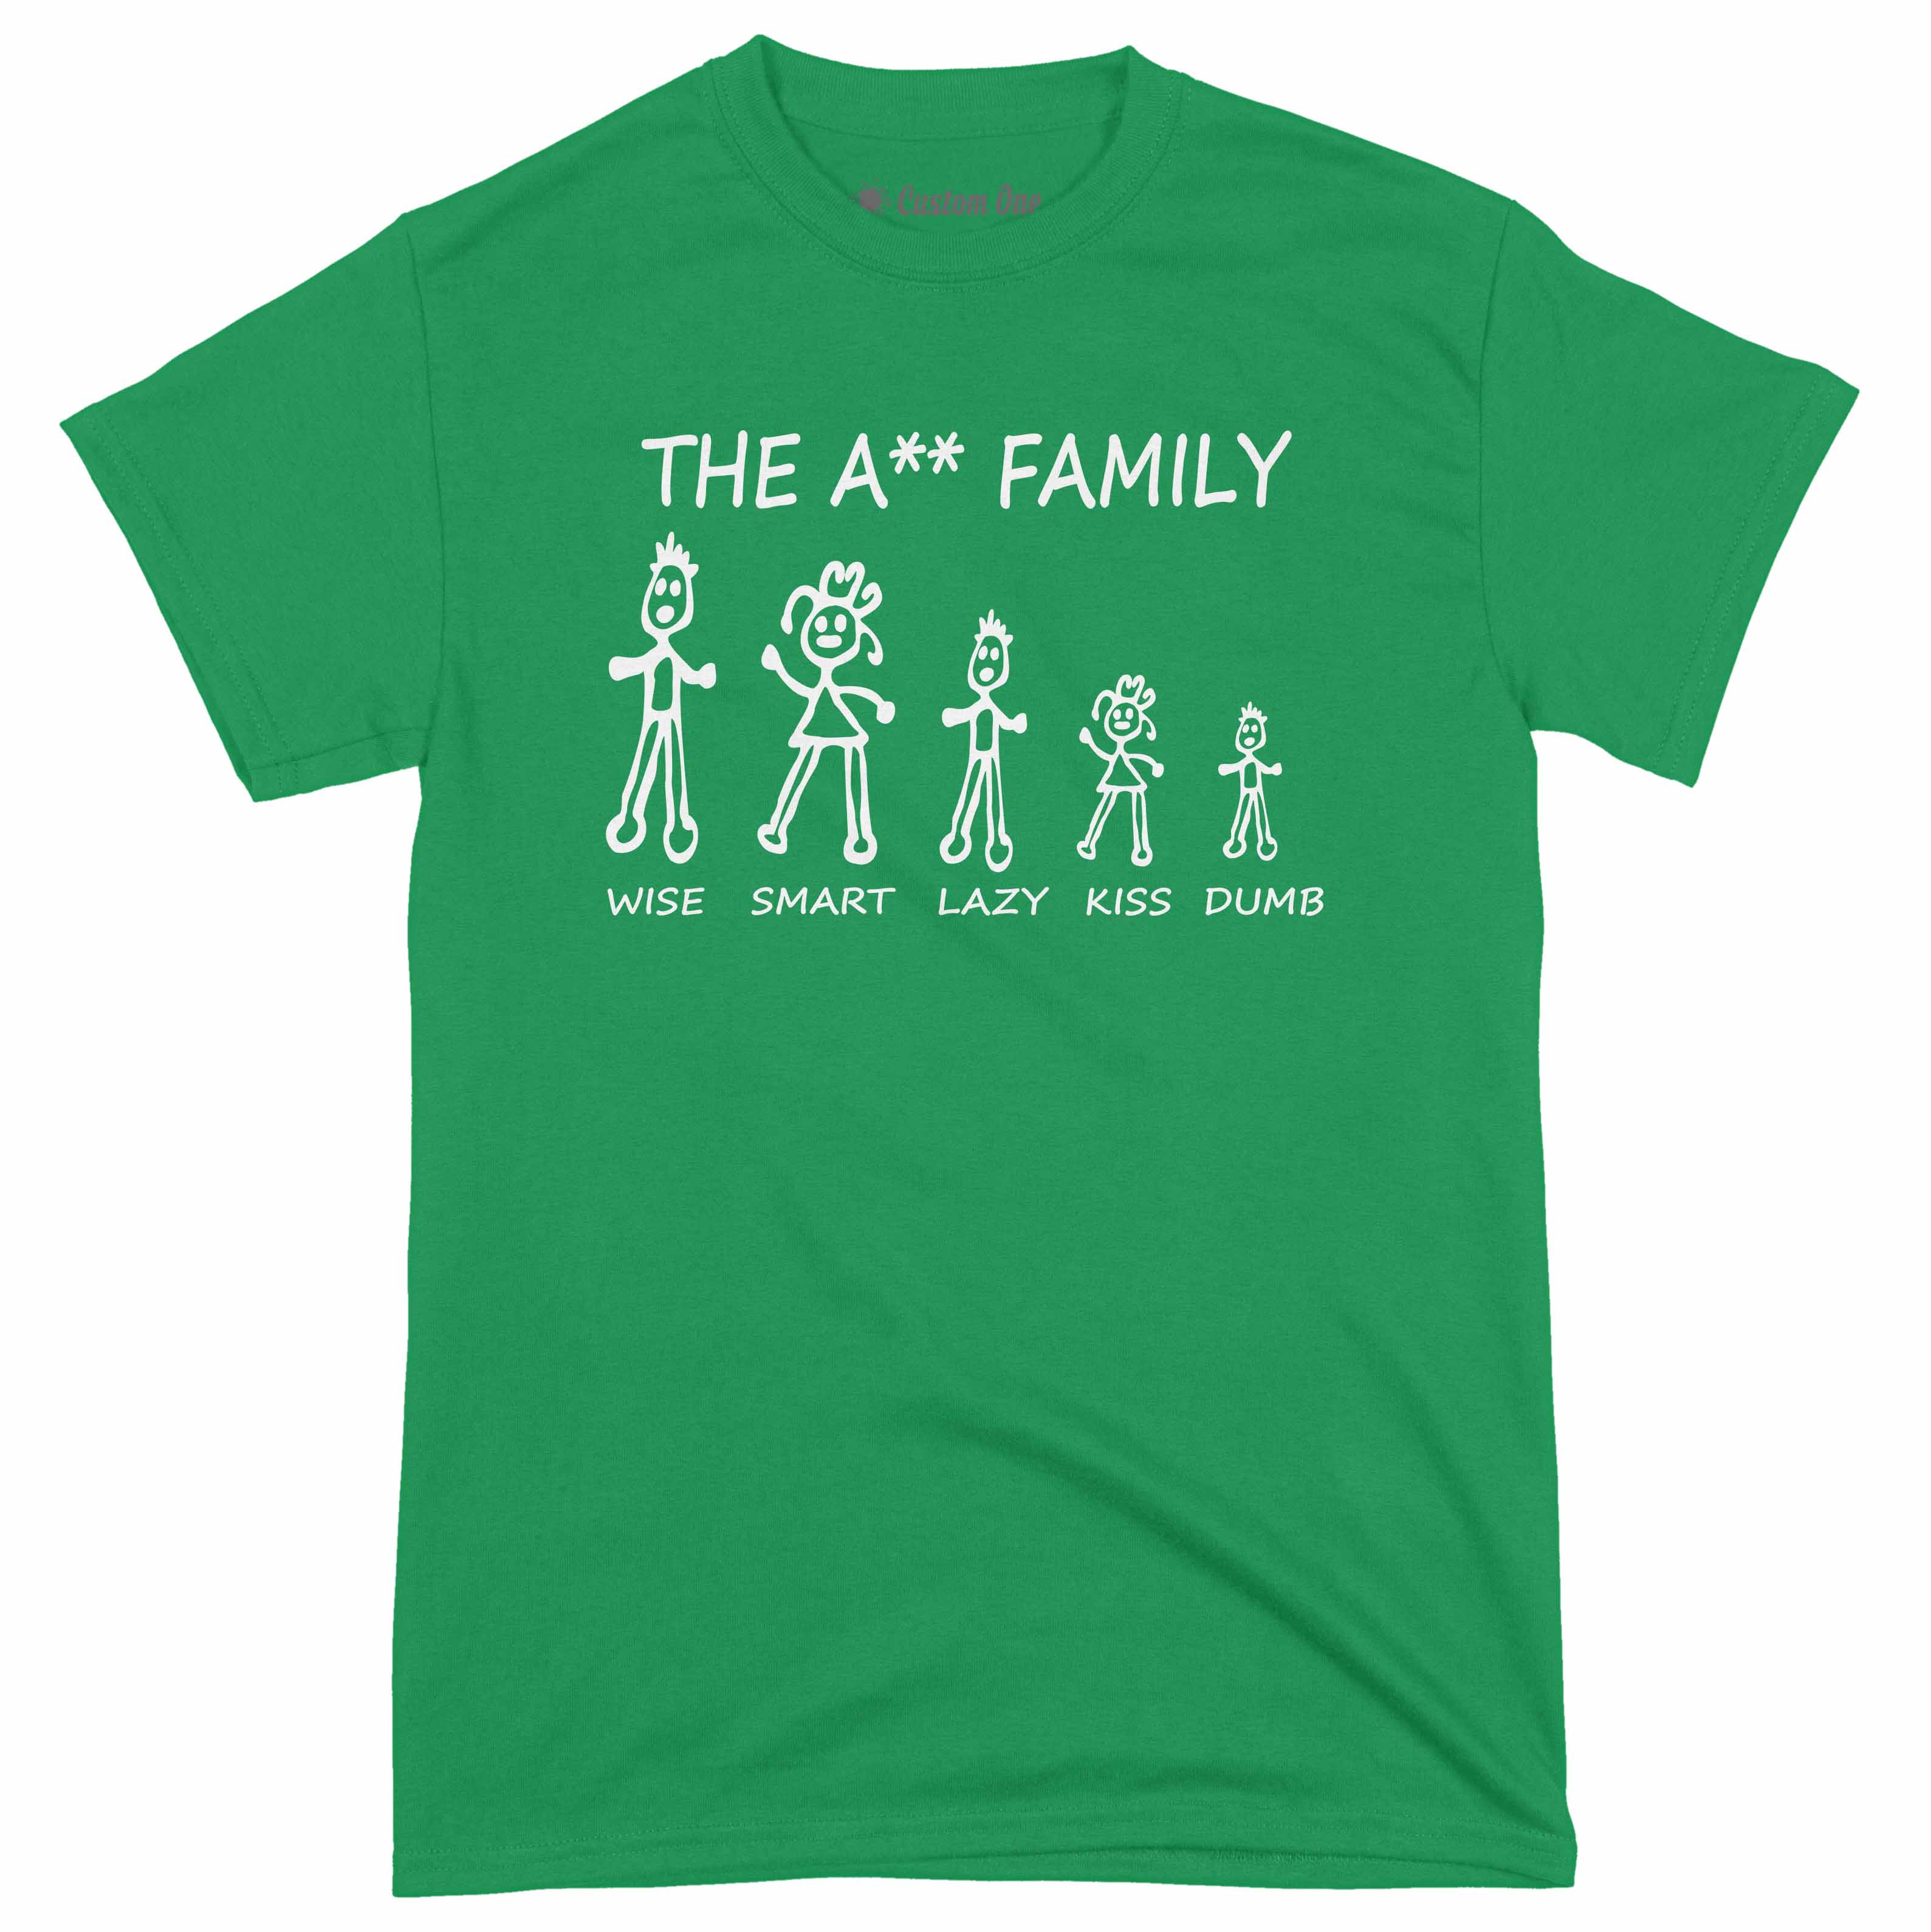 THE A** FAMILY